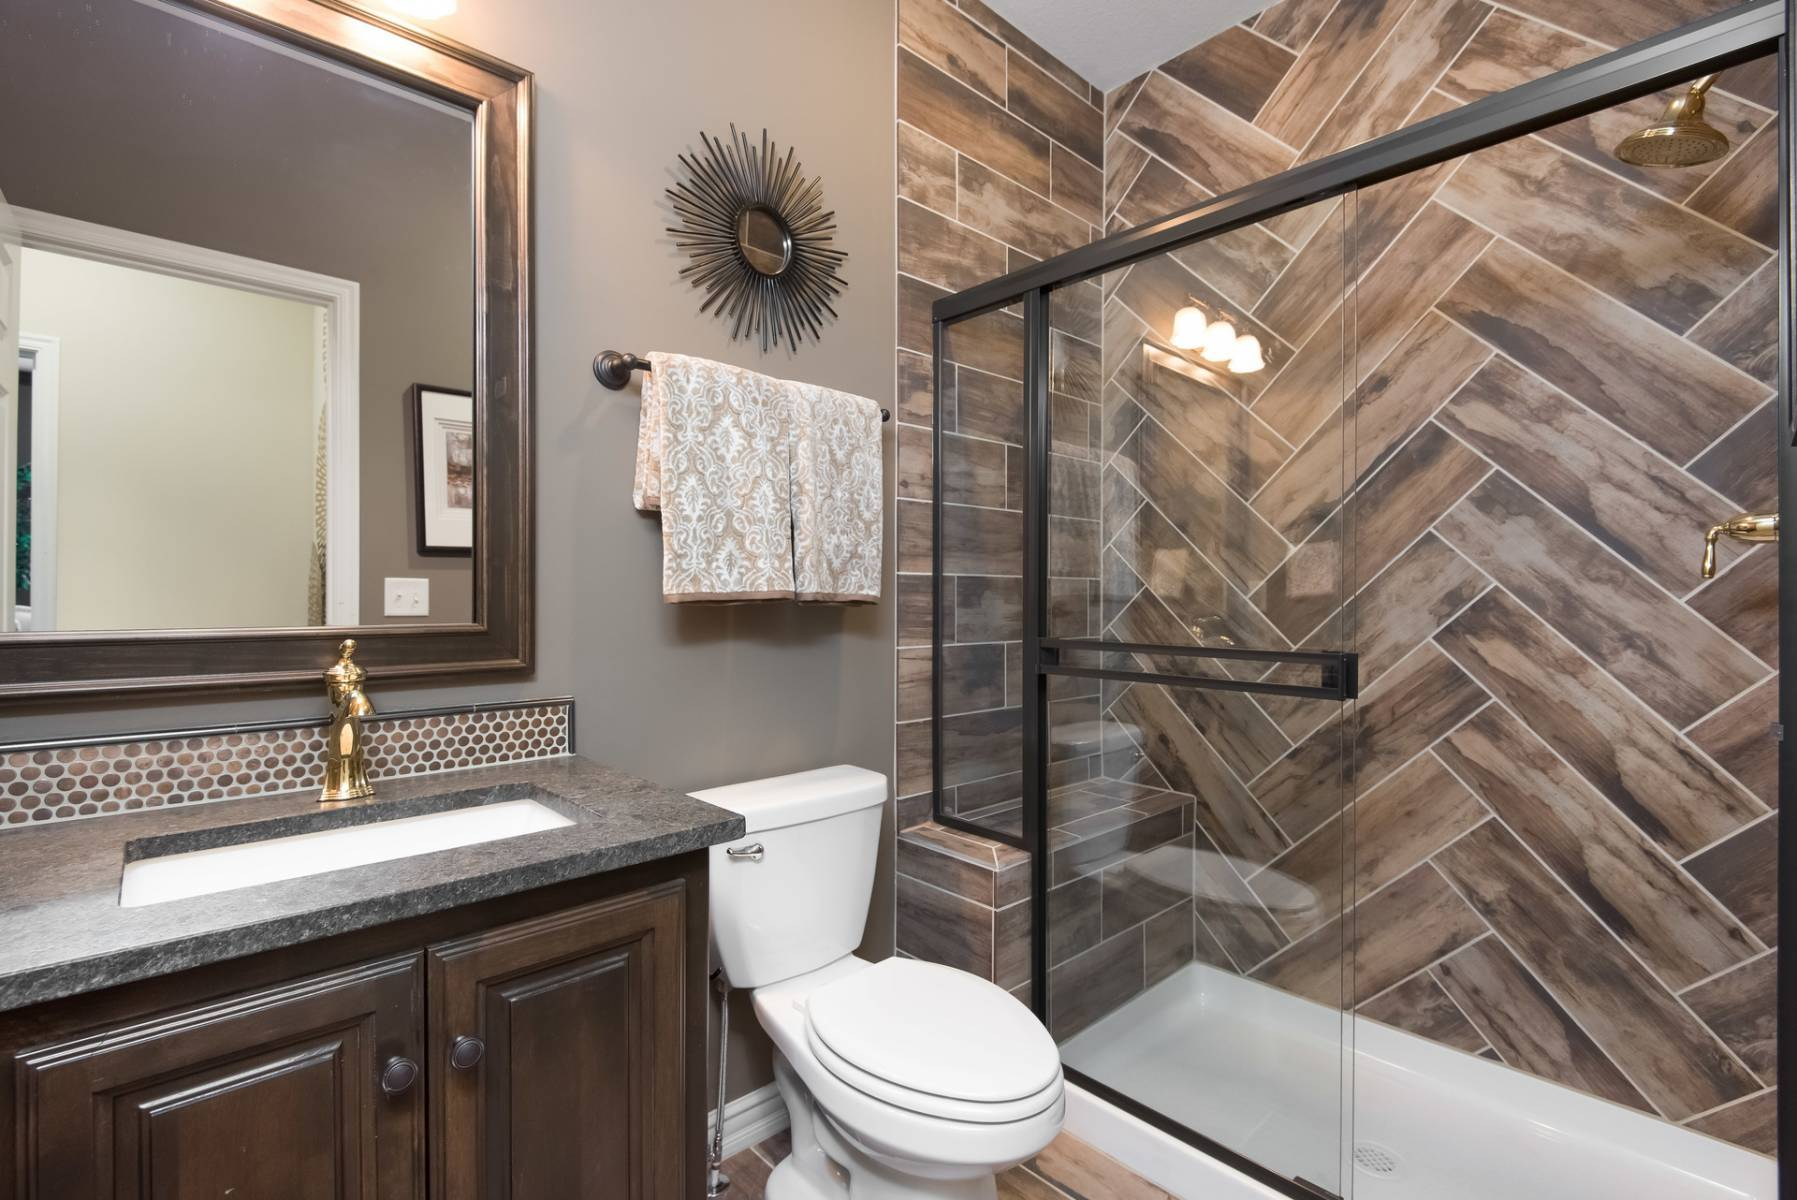 Bathroom featured in the Prescott By Summit Homes in Kansas City, MO